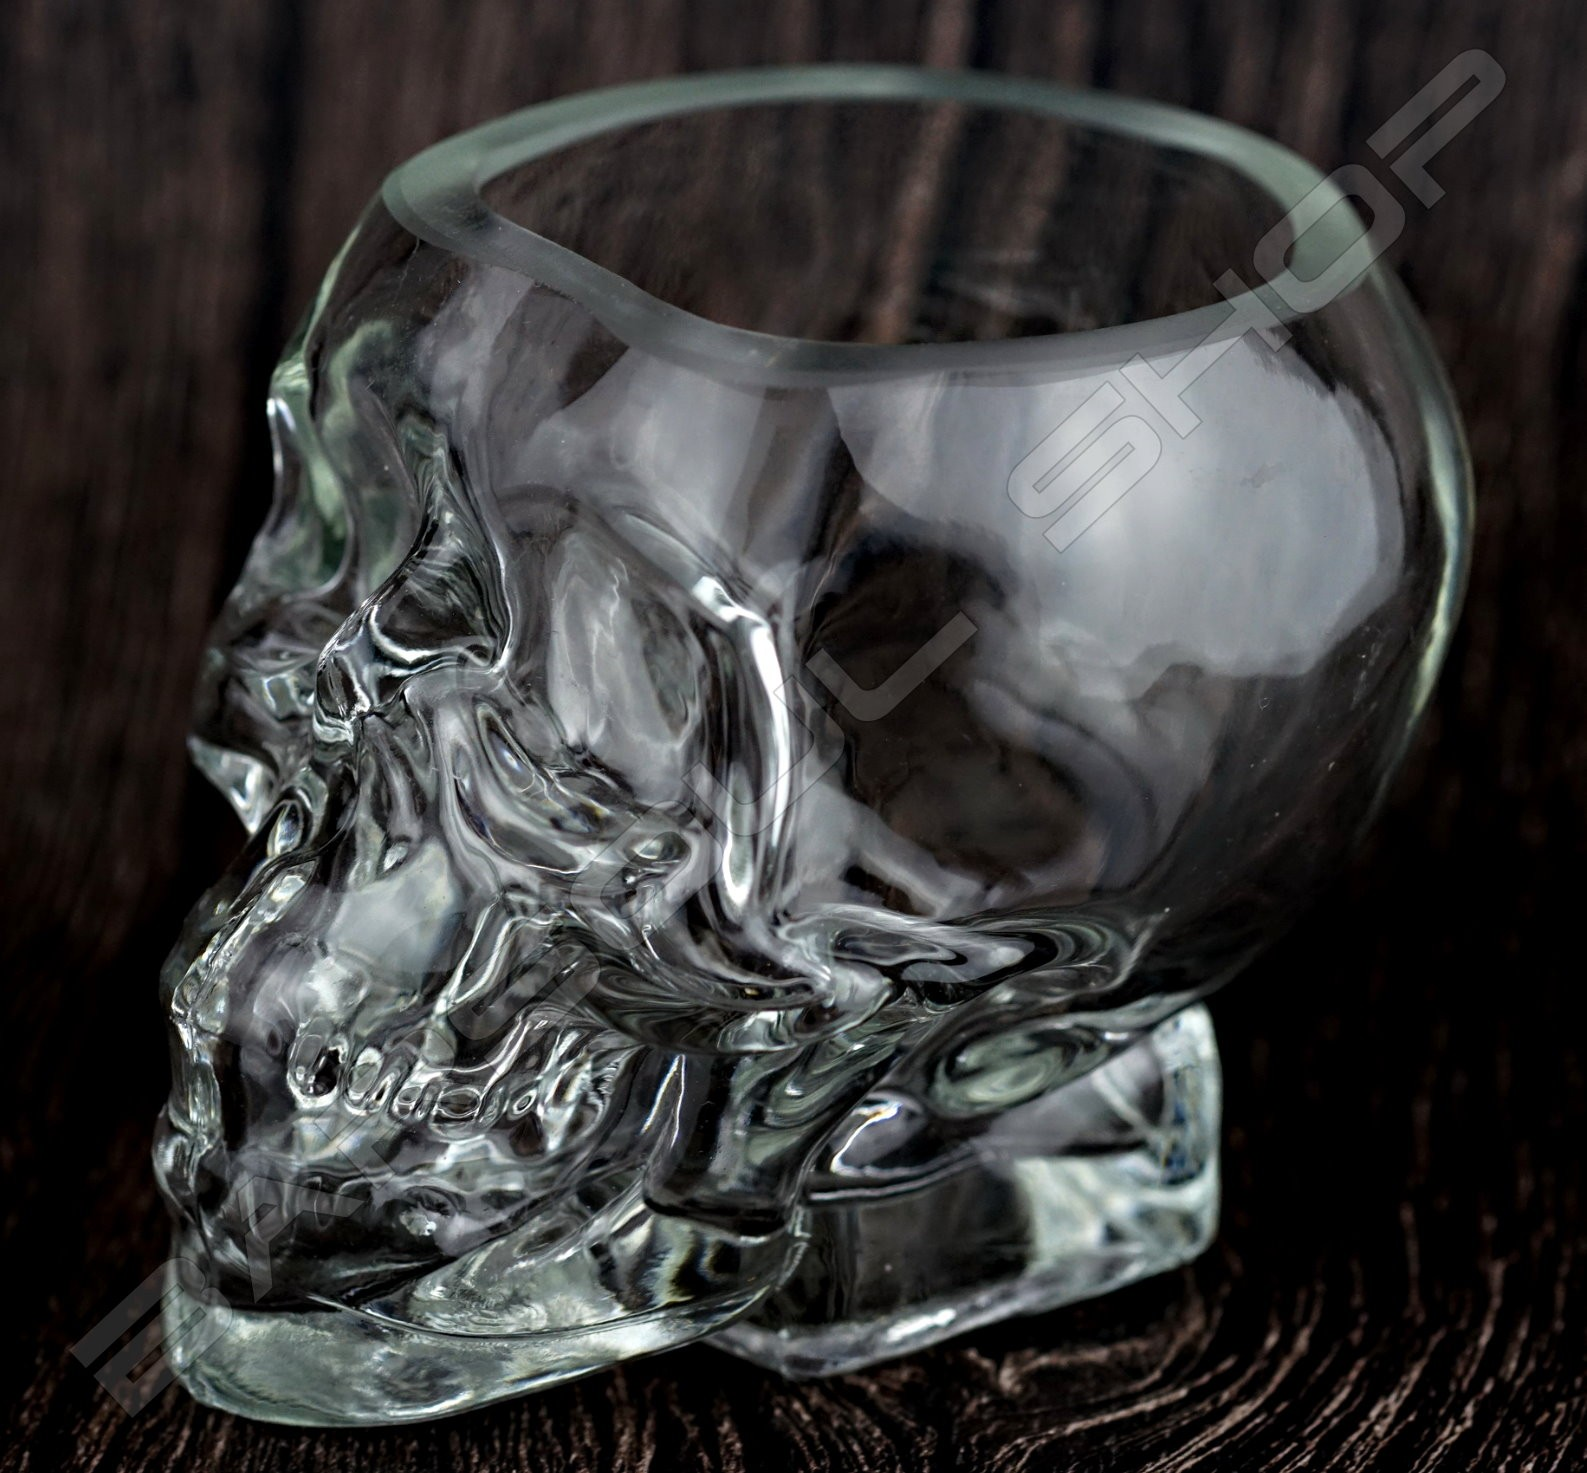 水晶骷髏造型杯300ml Crystal mixing glass Skull